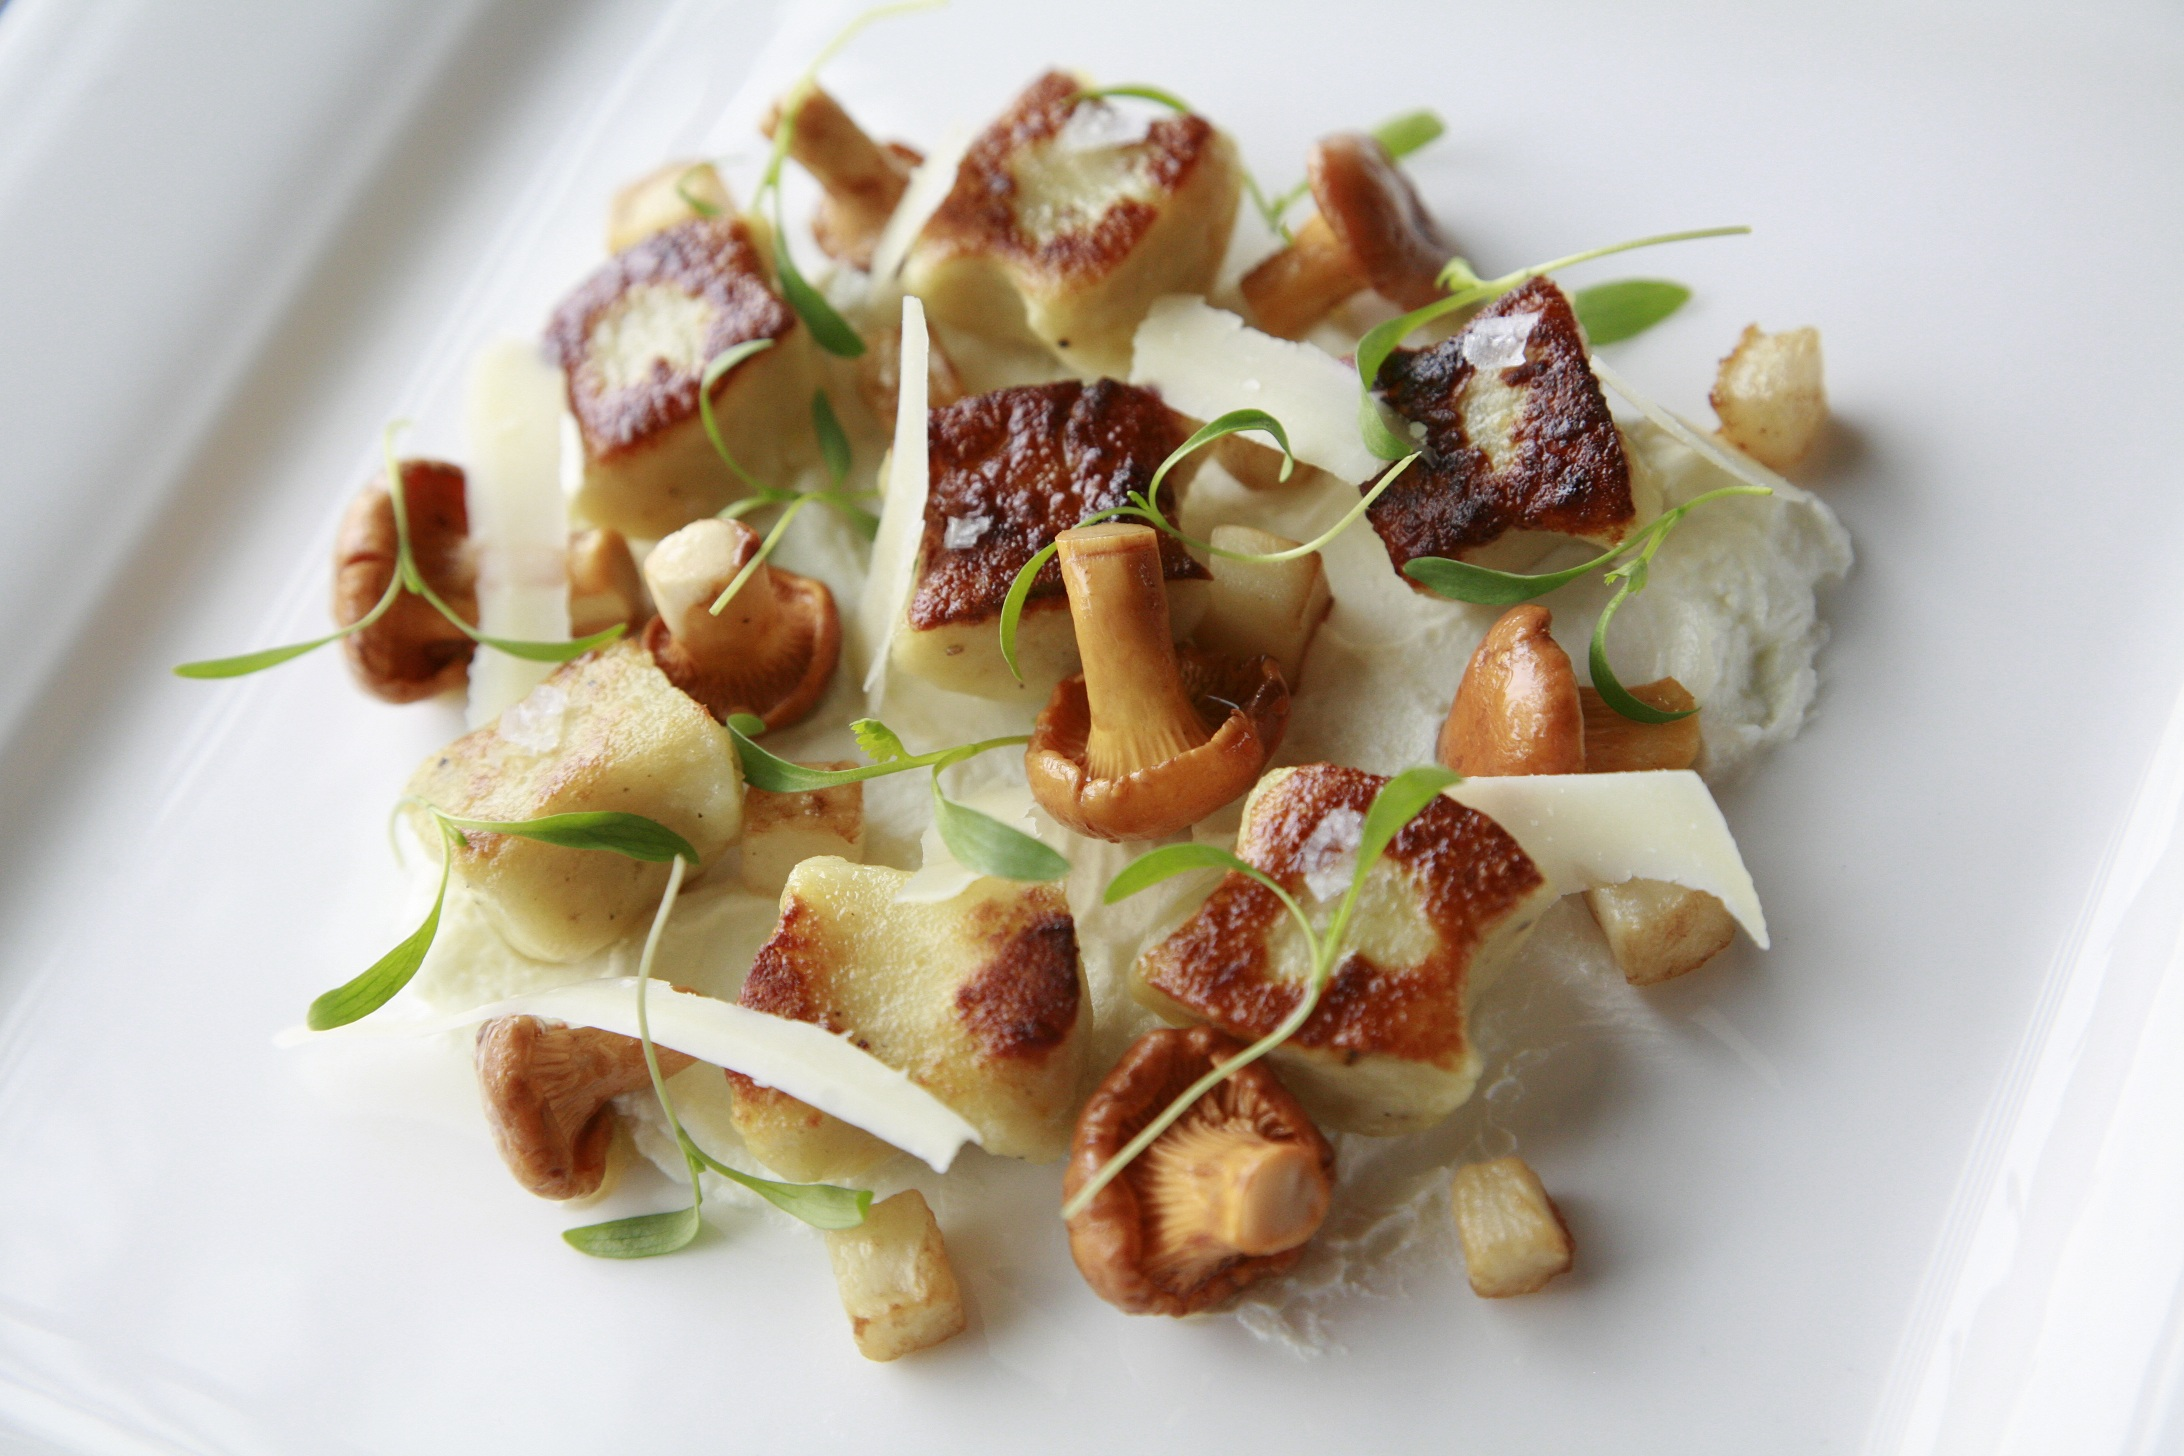 Chef Chris Haworth's uses organic and locally grown vegetables like wild mushrooms in his dishes